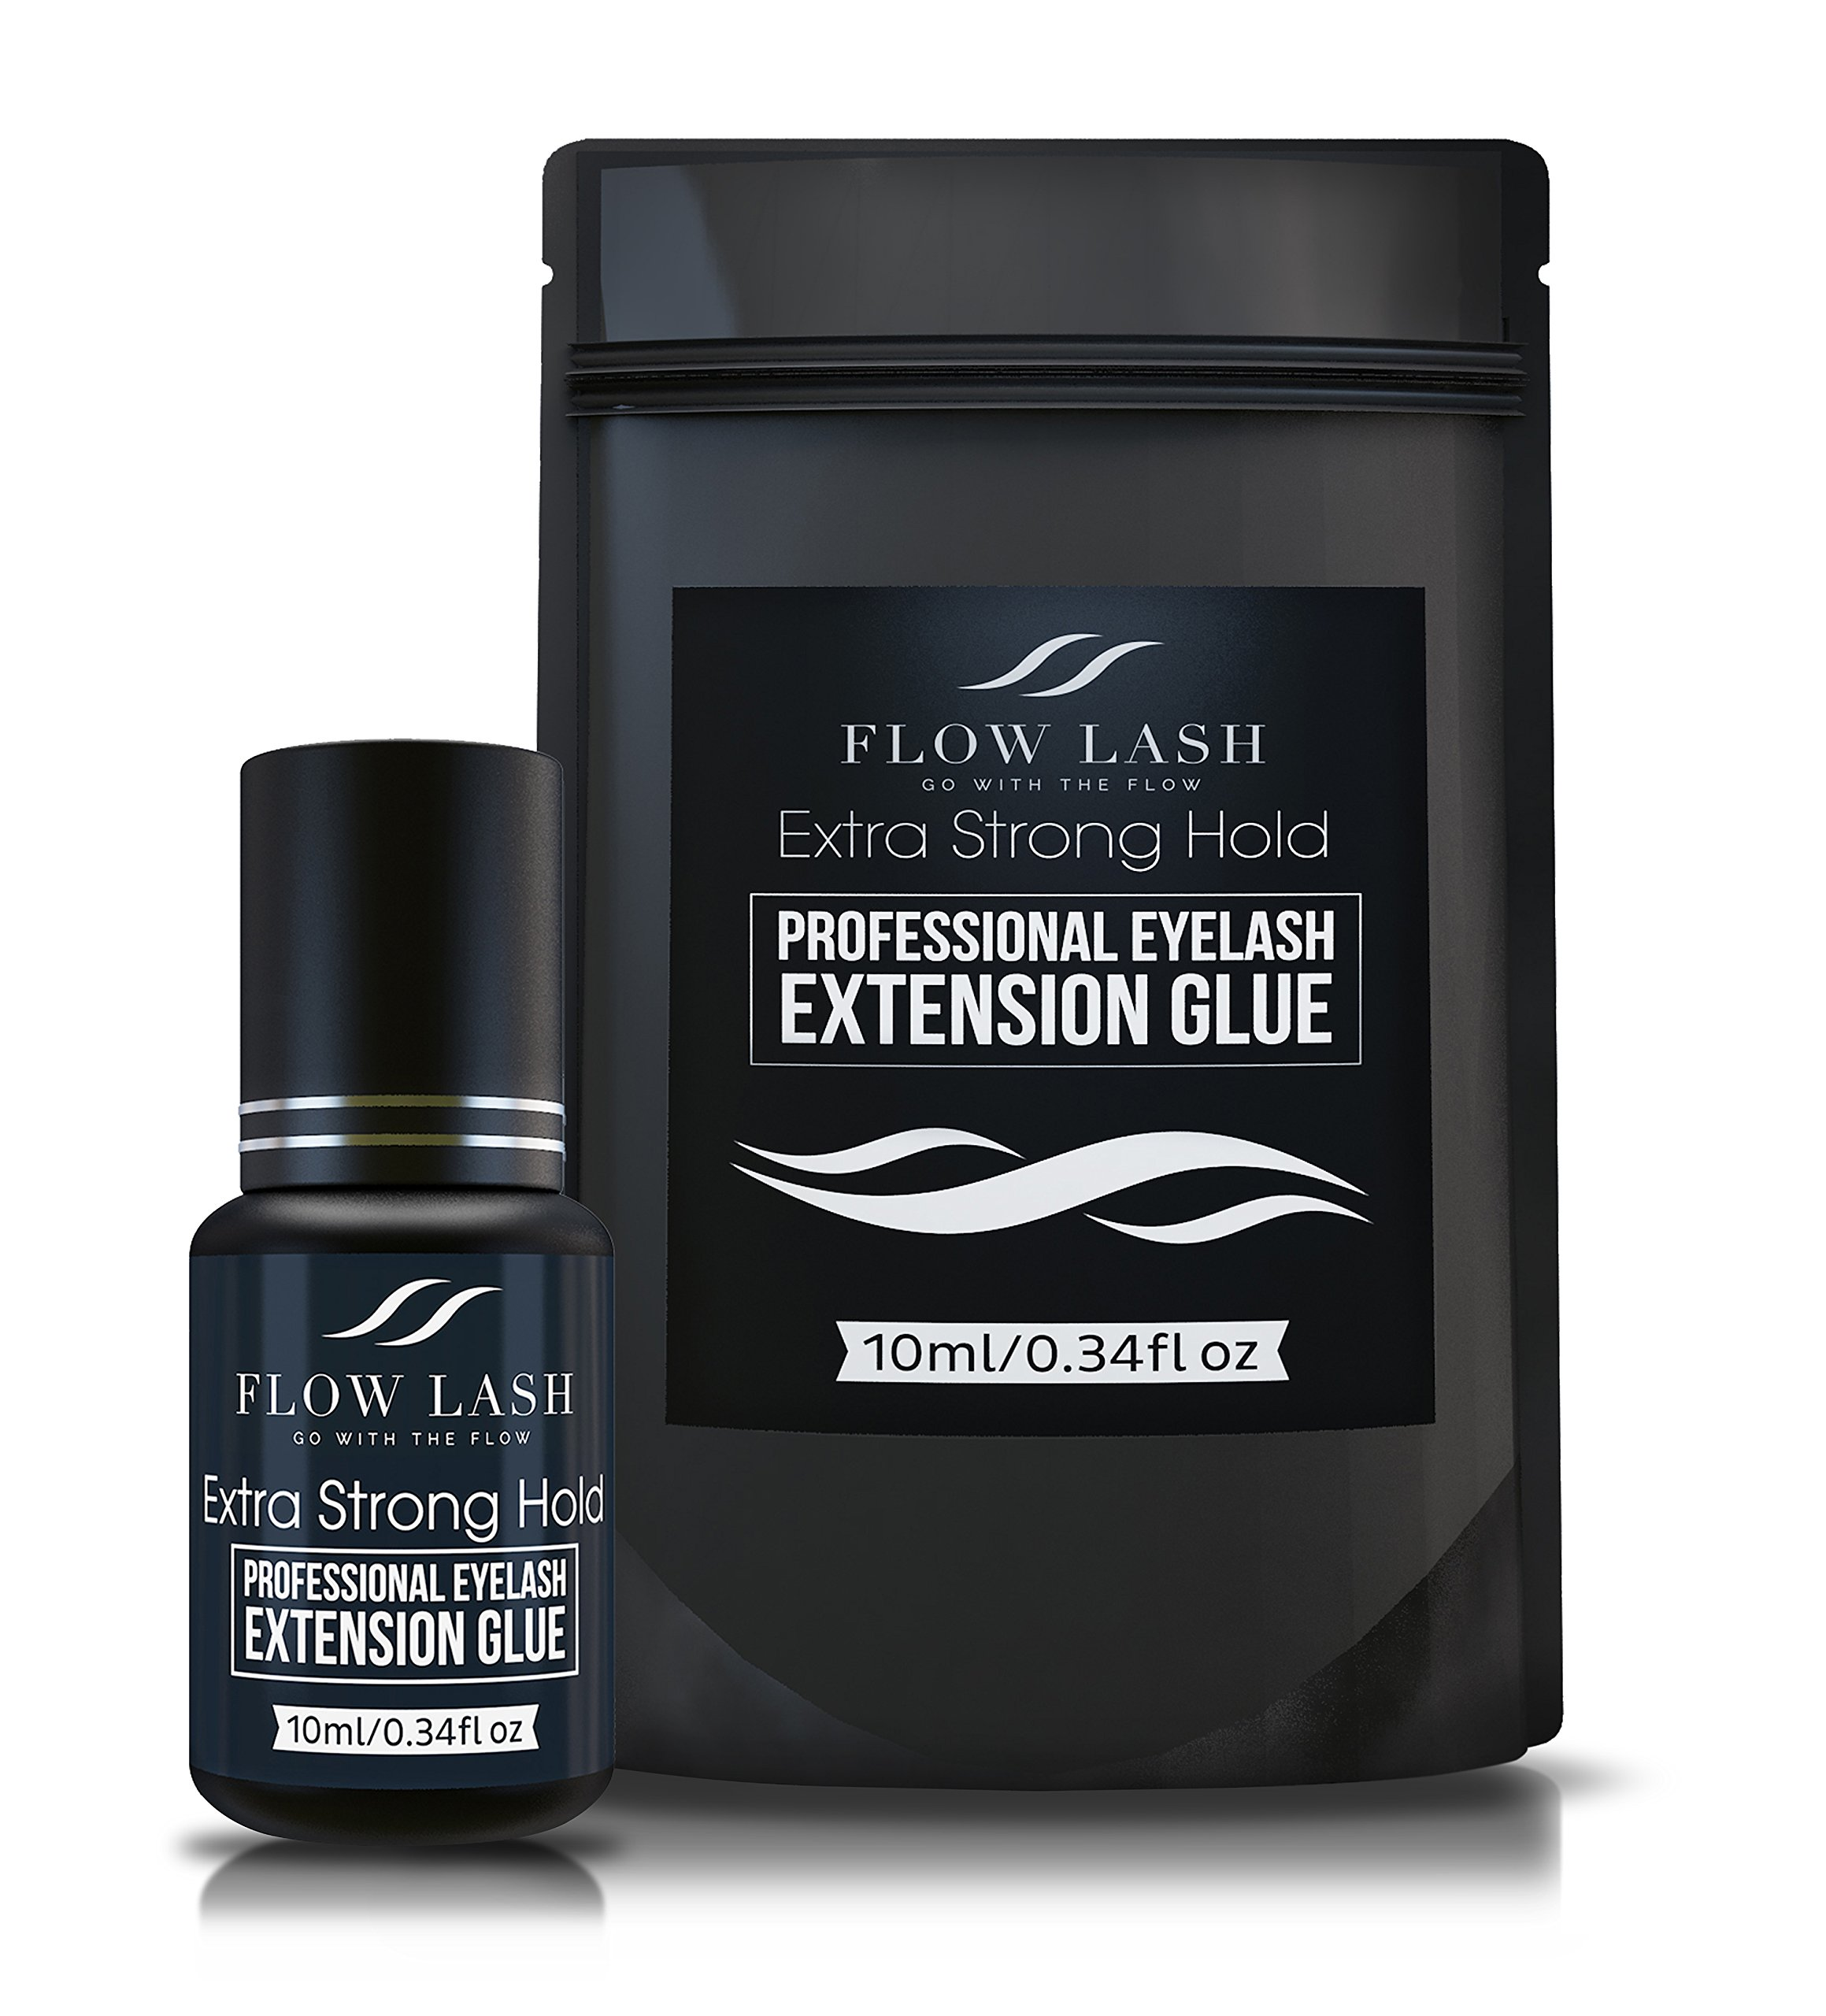 Professional Eyelash Extension Glue - Extra Strong Hold, Long Lasting, Quick Dry Time - Premium Professional Grade Adhesive, Formaldehyde & Latex Free - 10ml by Flow Lash by Flow Lash (Image #3)